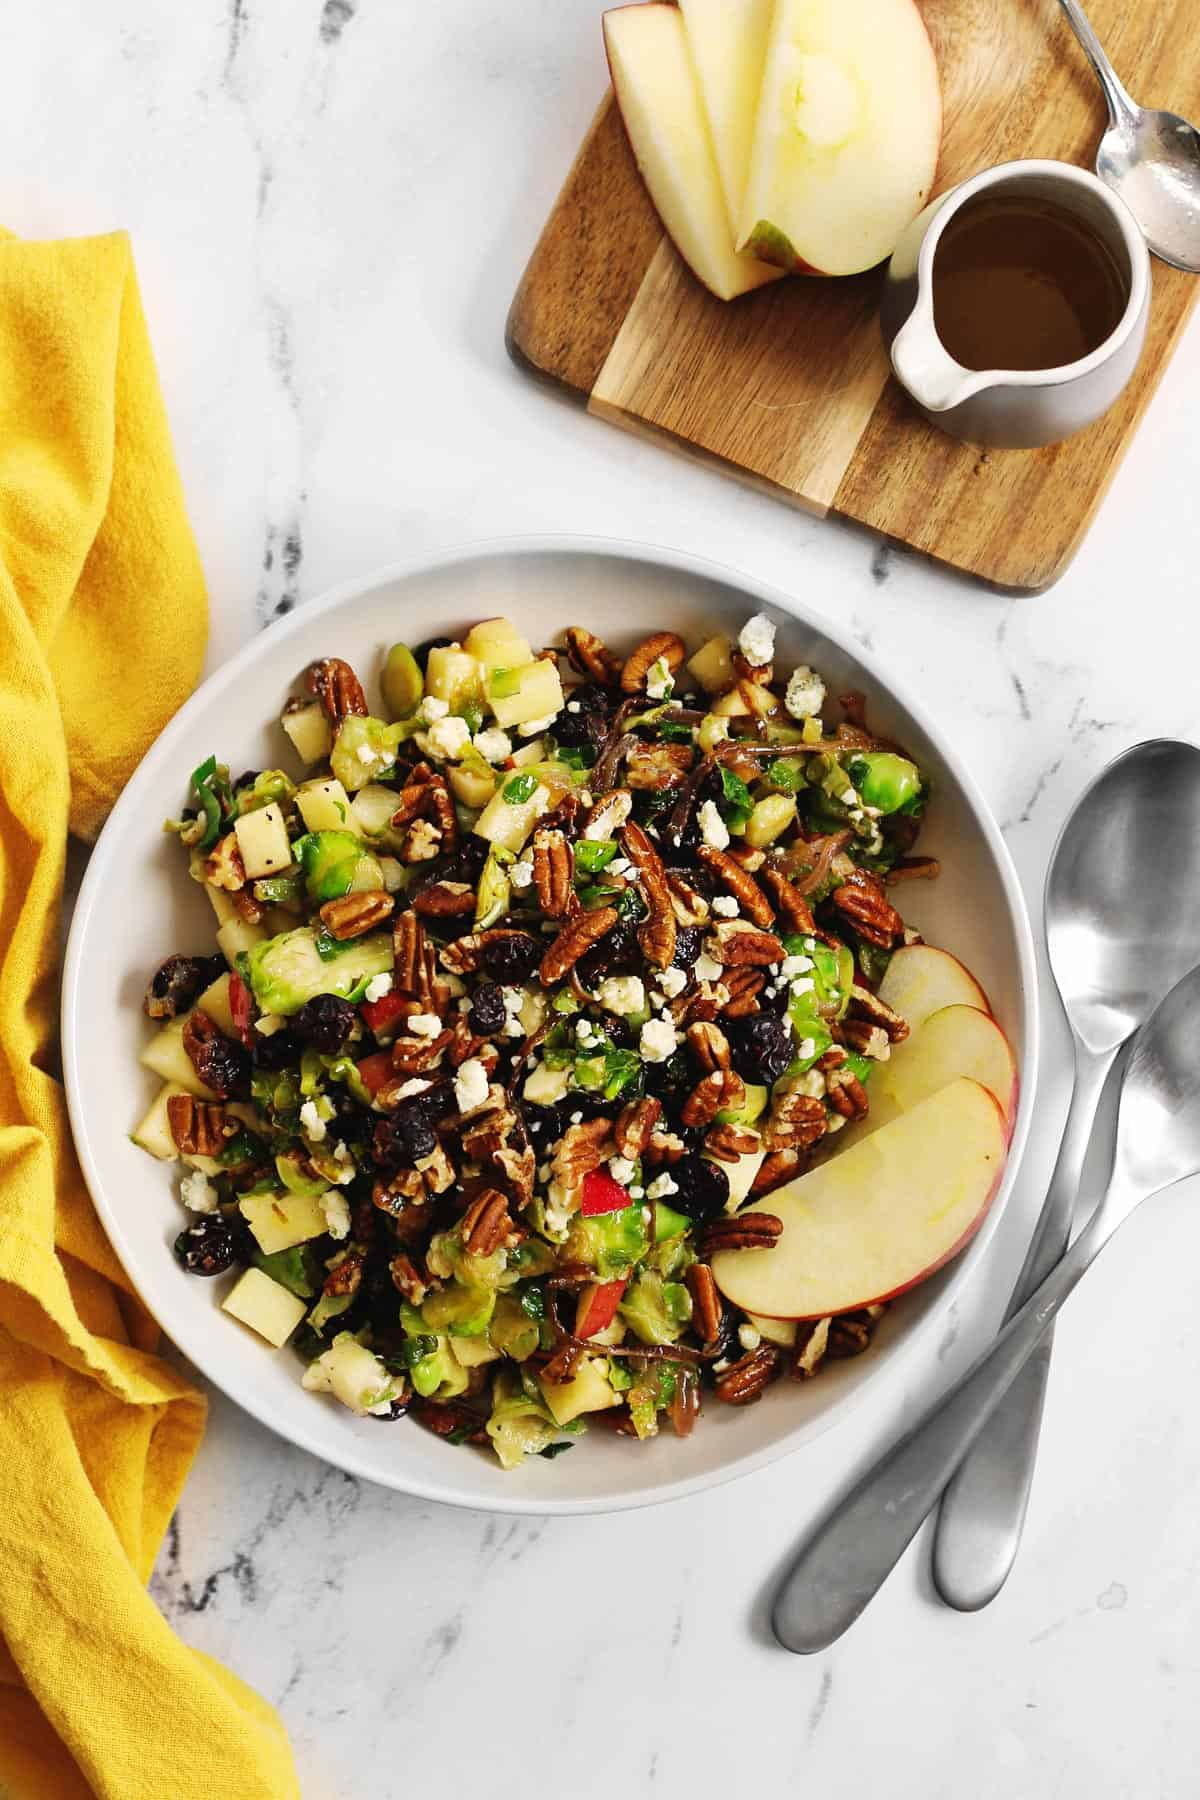 Thanksgiving salad with apple slices